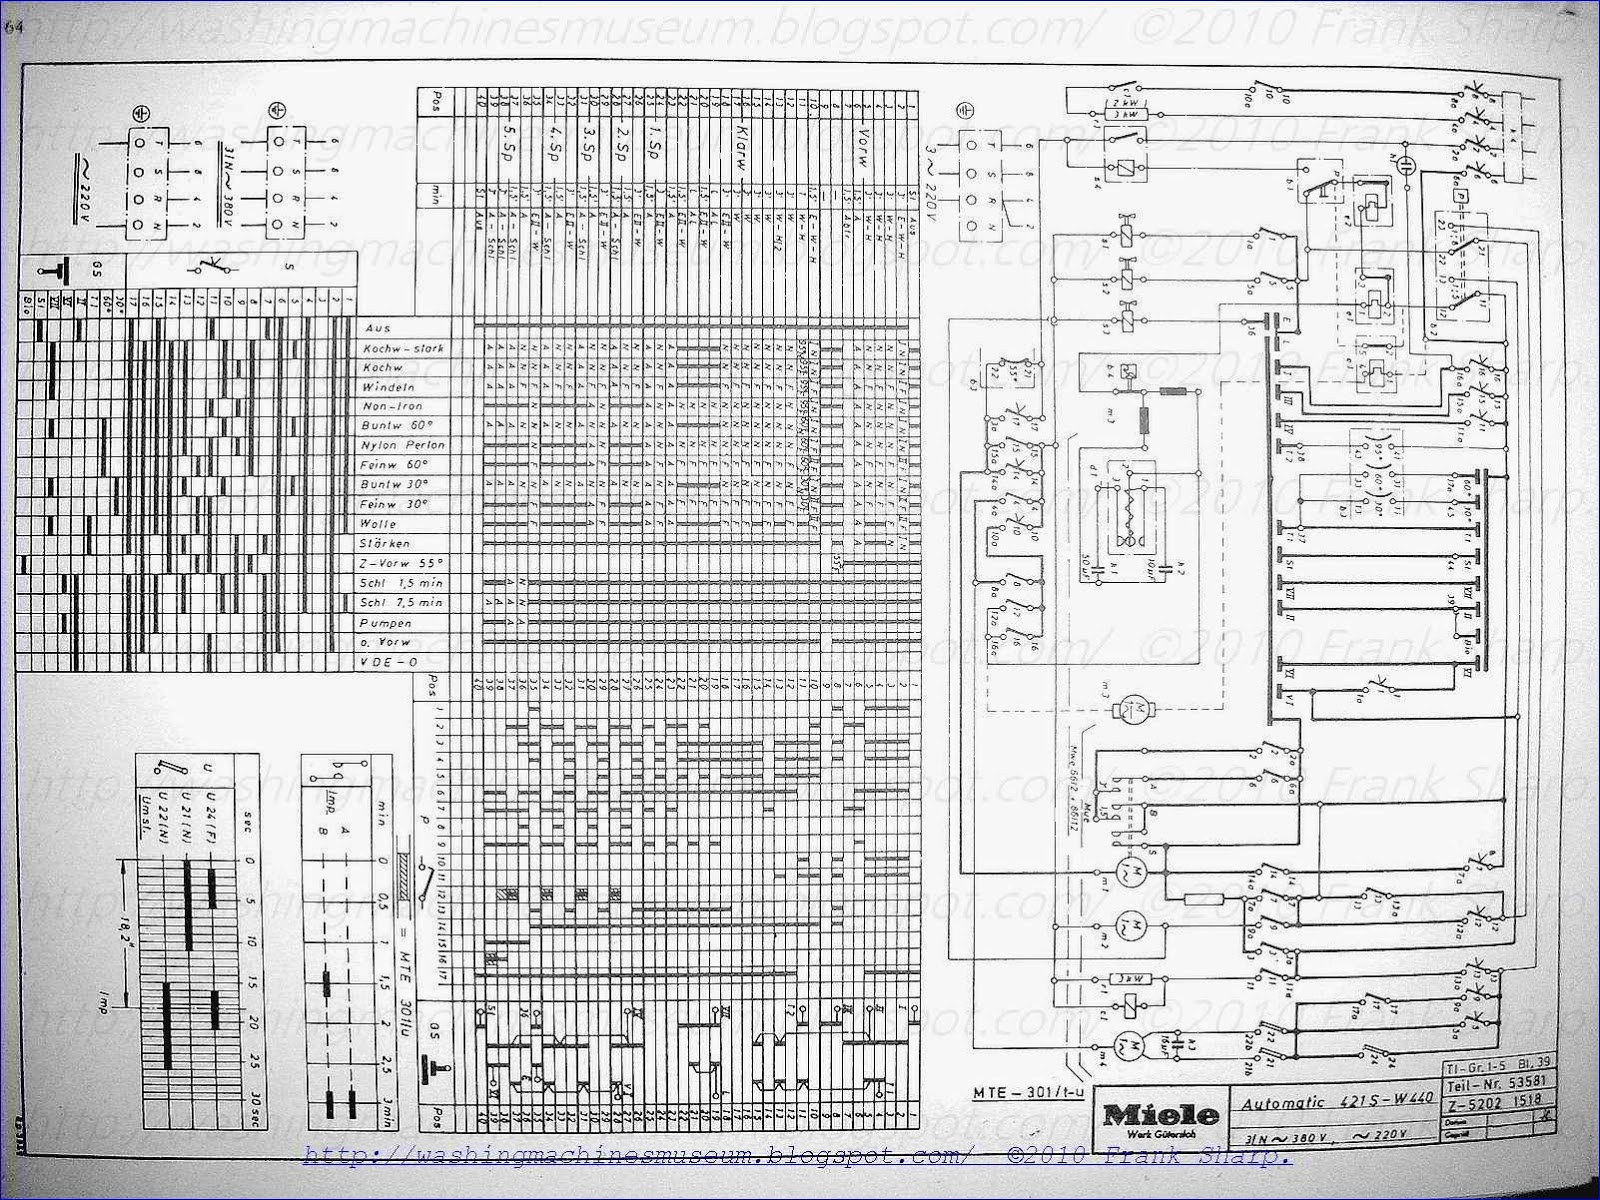 small resolution of miele wiring diagram wiring librarymiele automatic 421s w440 timer holzer mte 301 t u schematic diagram